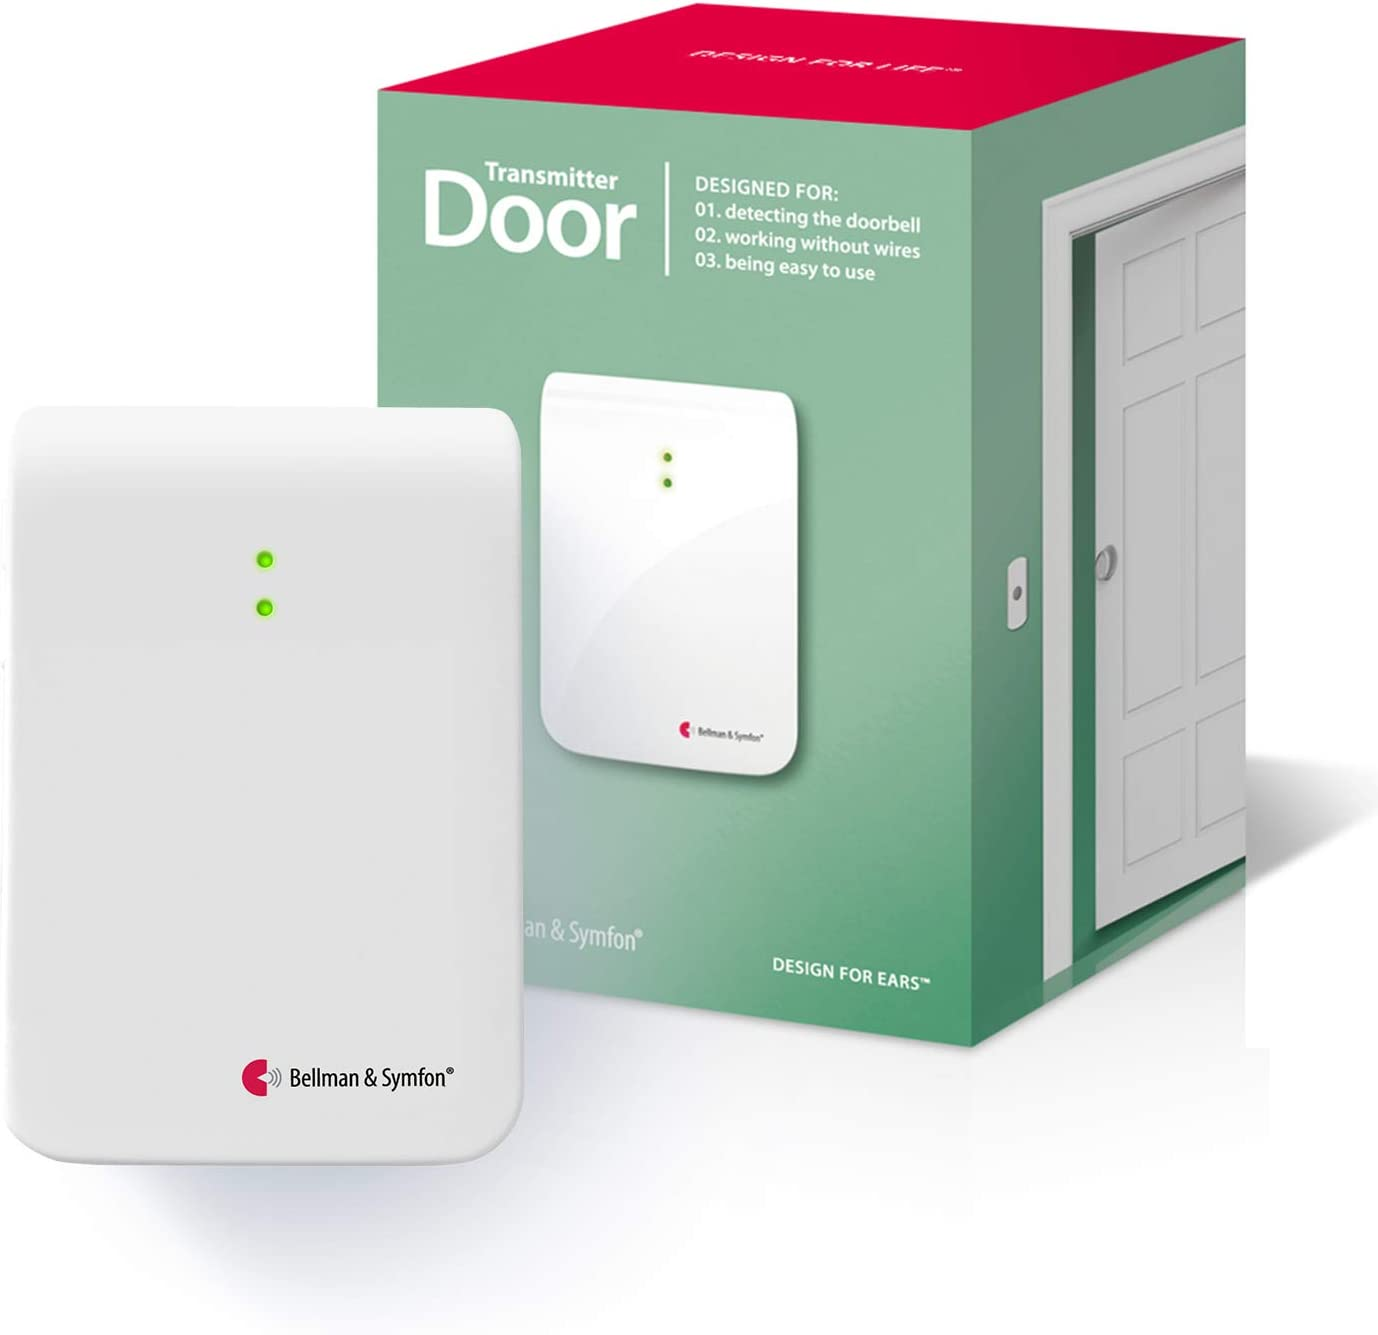 Bellman & Symfon Door Transmitter for Visit Home Alerting System - Doorbell & Intercom Detection for Difficult Hearing Situations - Wireless Smart Home - Easy to Use, for Seniors, Sense of Security